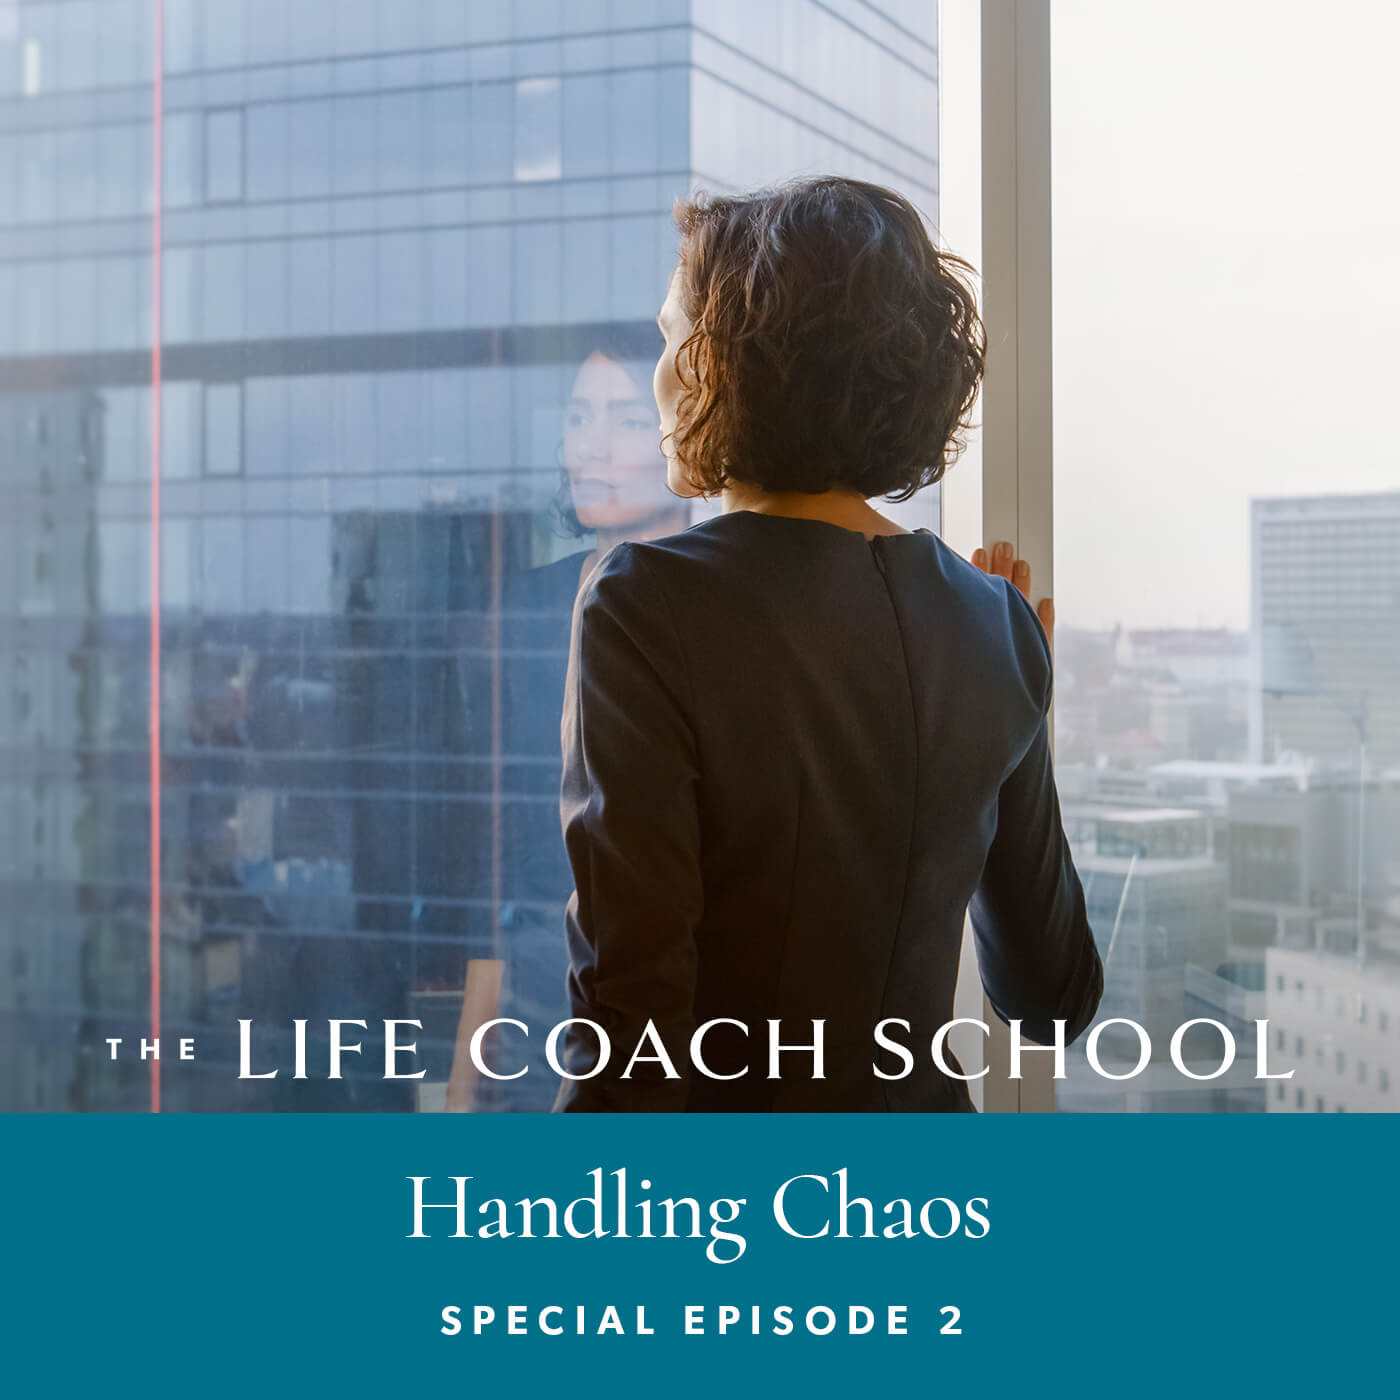 The Life Coach School Podcast with Brooke Castillo | Special Episode | Handling Chaos 02